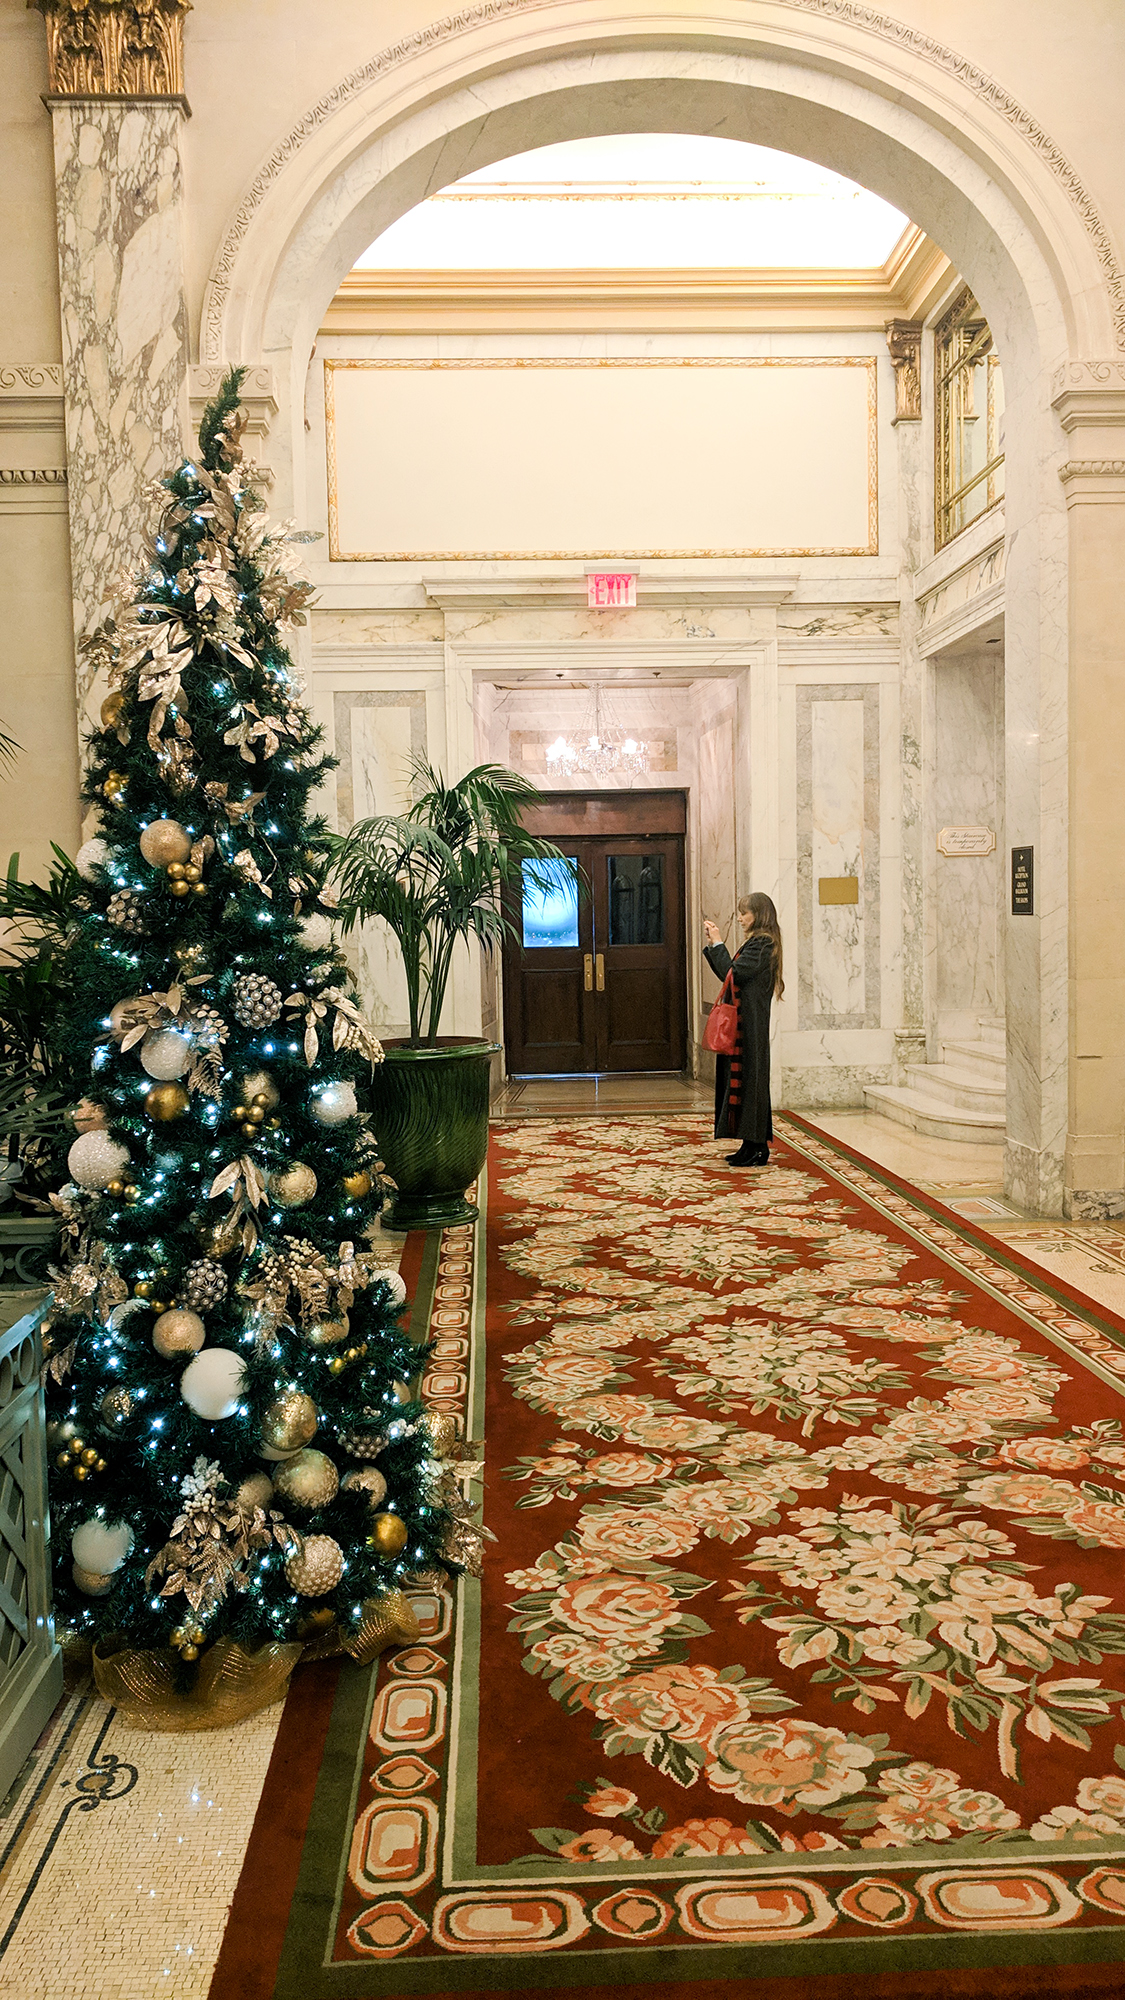 Christmas Tea at the Plaza Hotel - Hey Mishka - NYC Guide (7)